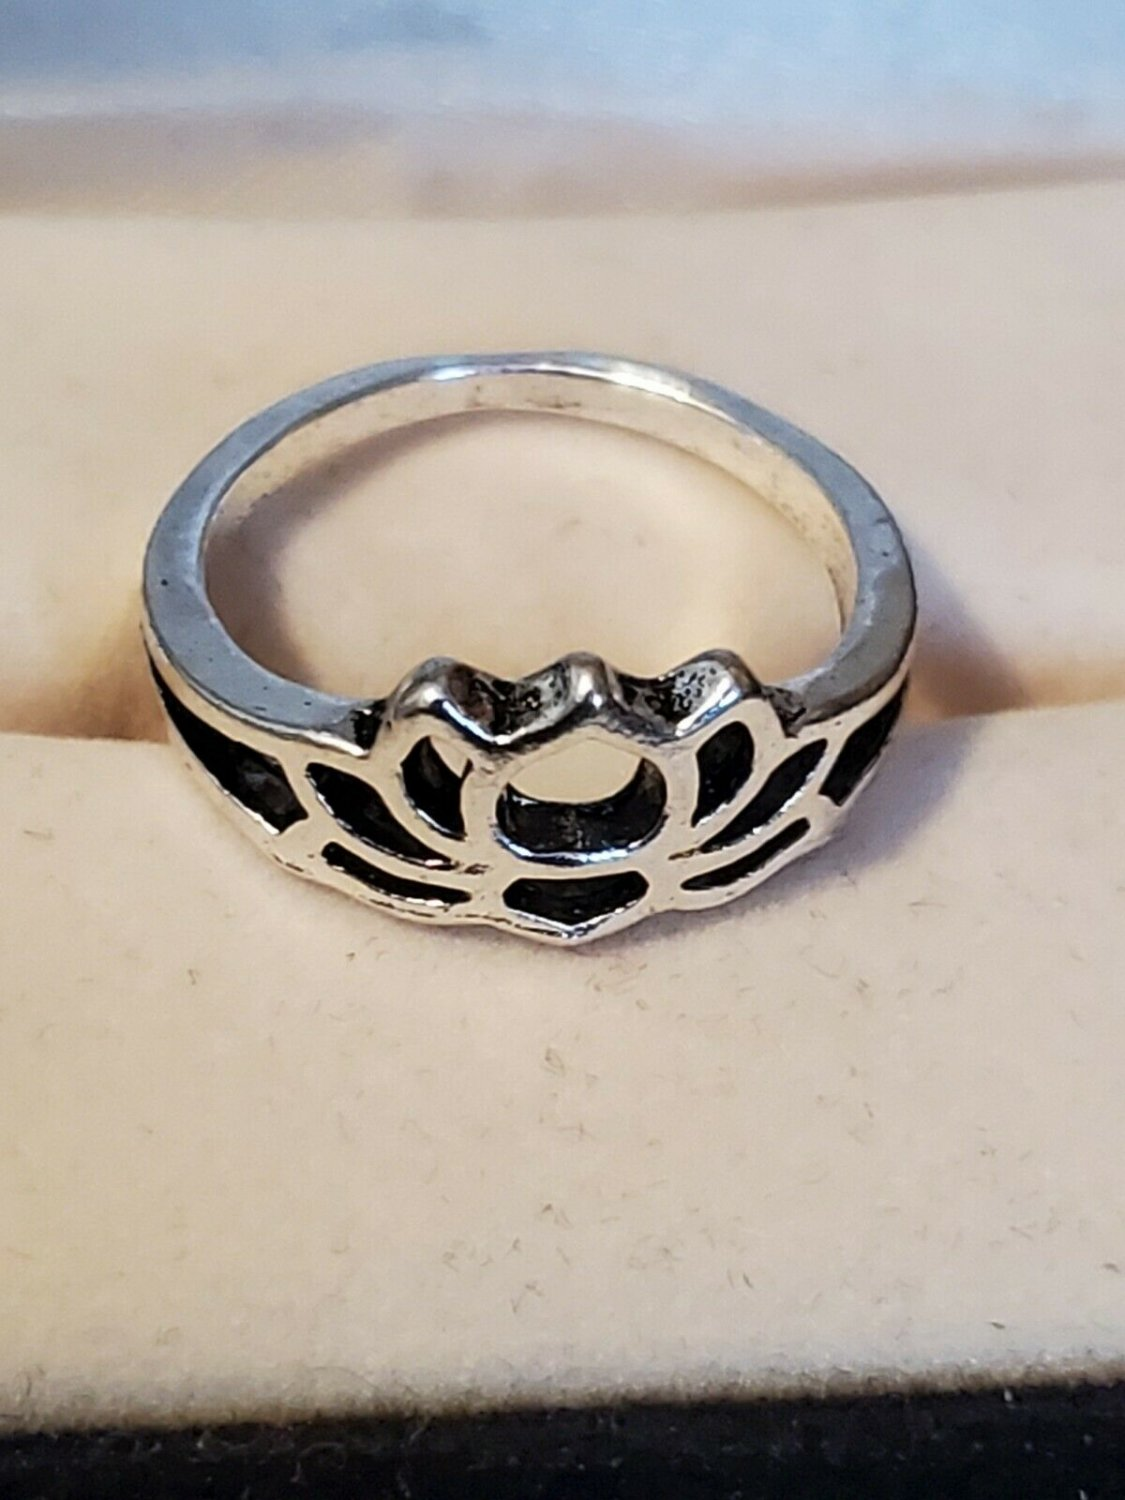 Size 5 Silver Tone Lotus Flower Toe or Finger Ring Women Teen Kid Jewelry Style